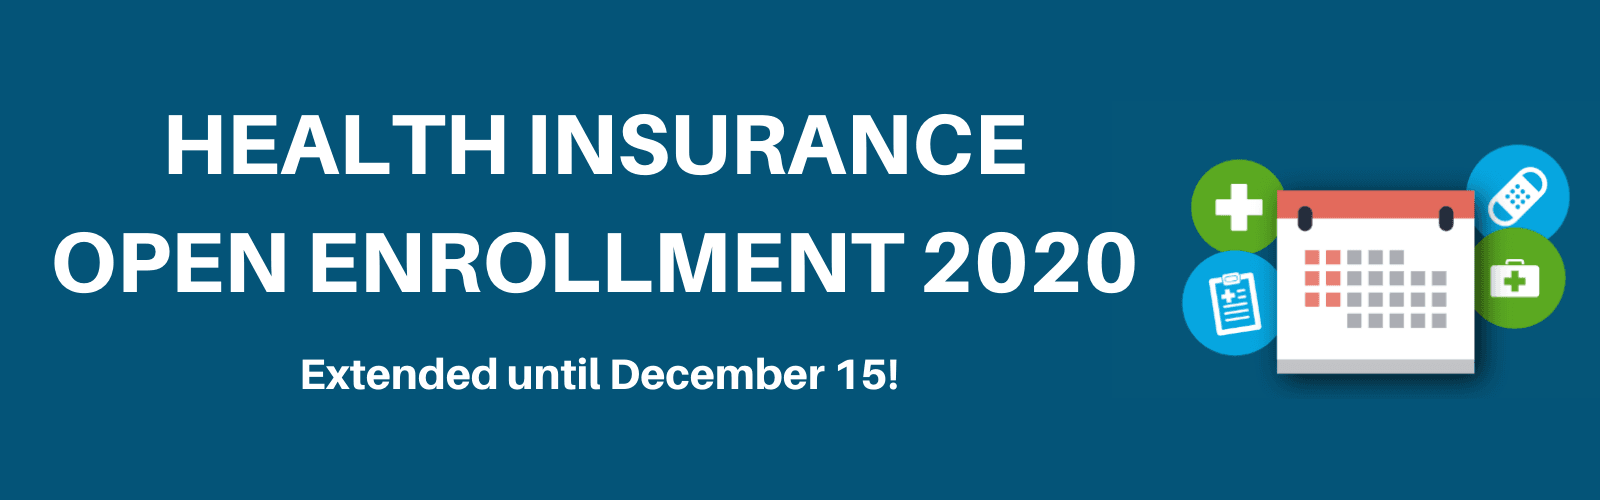 Open Enrollment 2020 1600x500